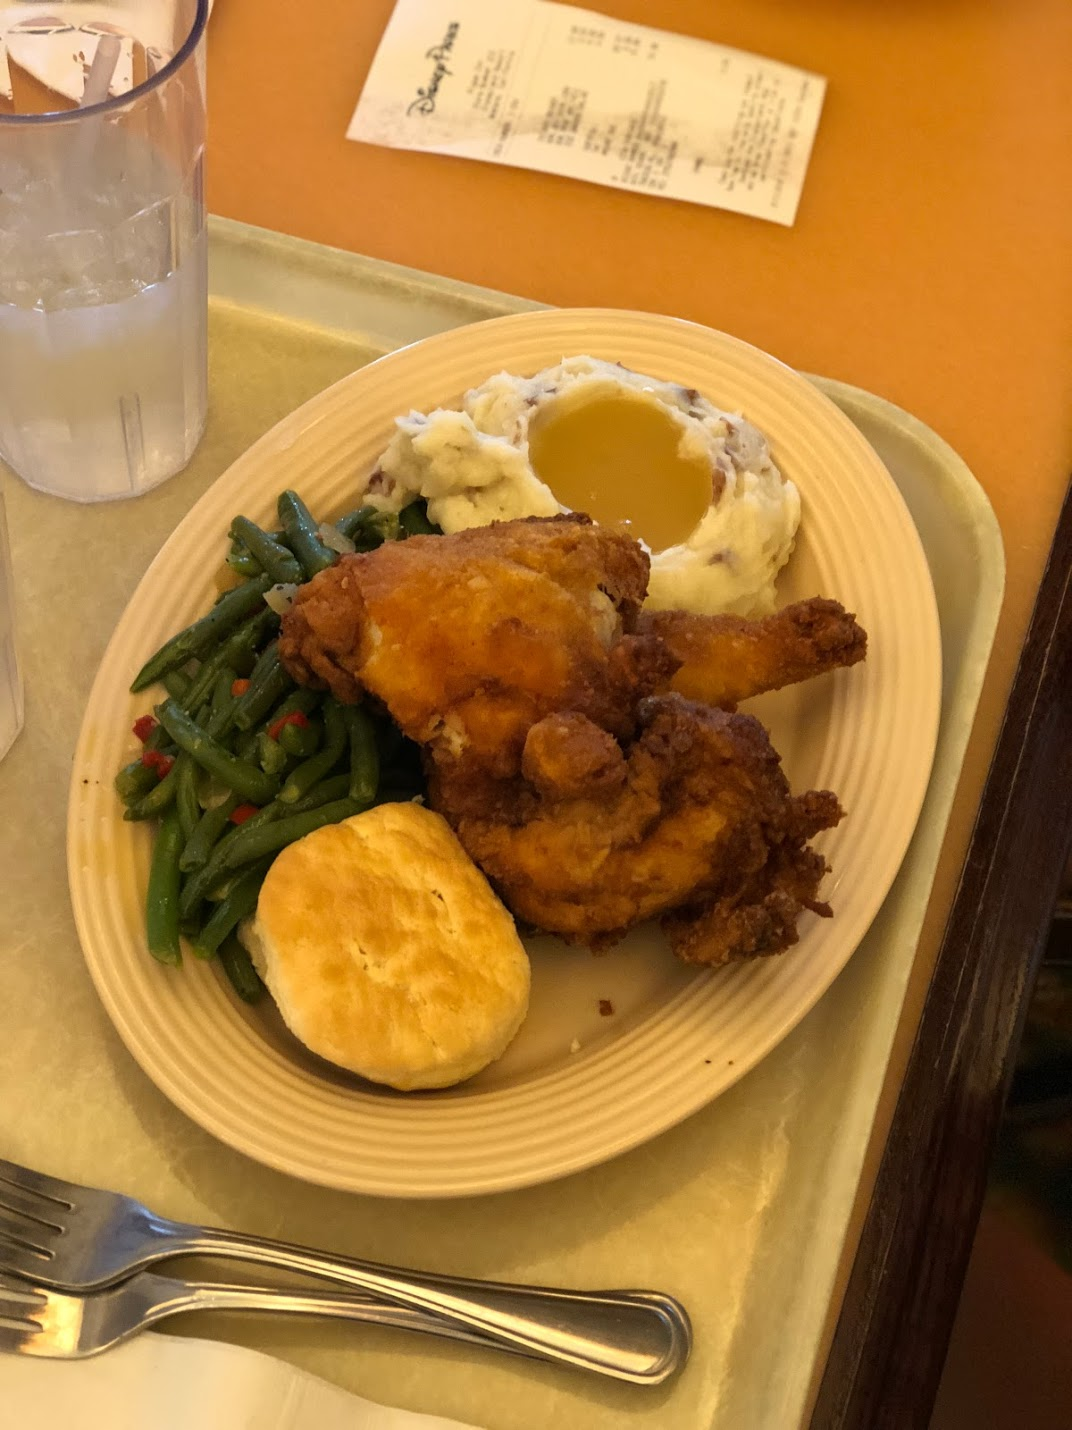 This is the adult sized meal, but you can see how tasty it looks! We split this between Forrest and me